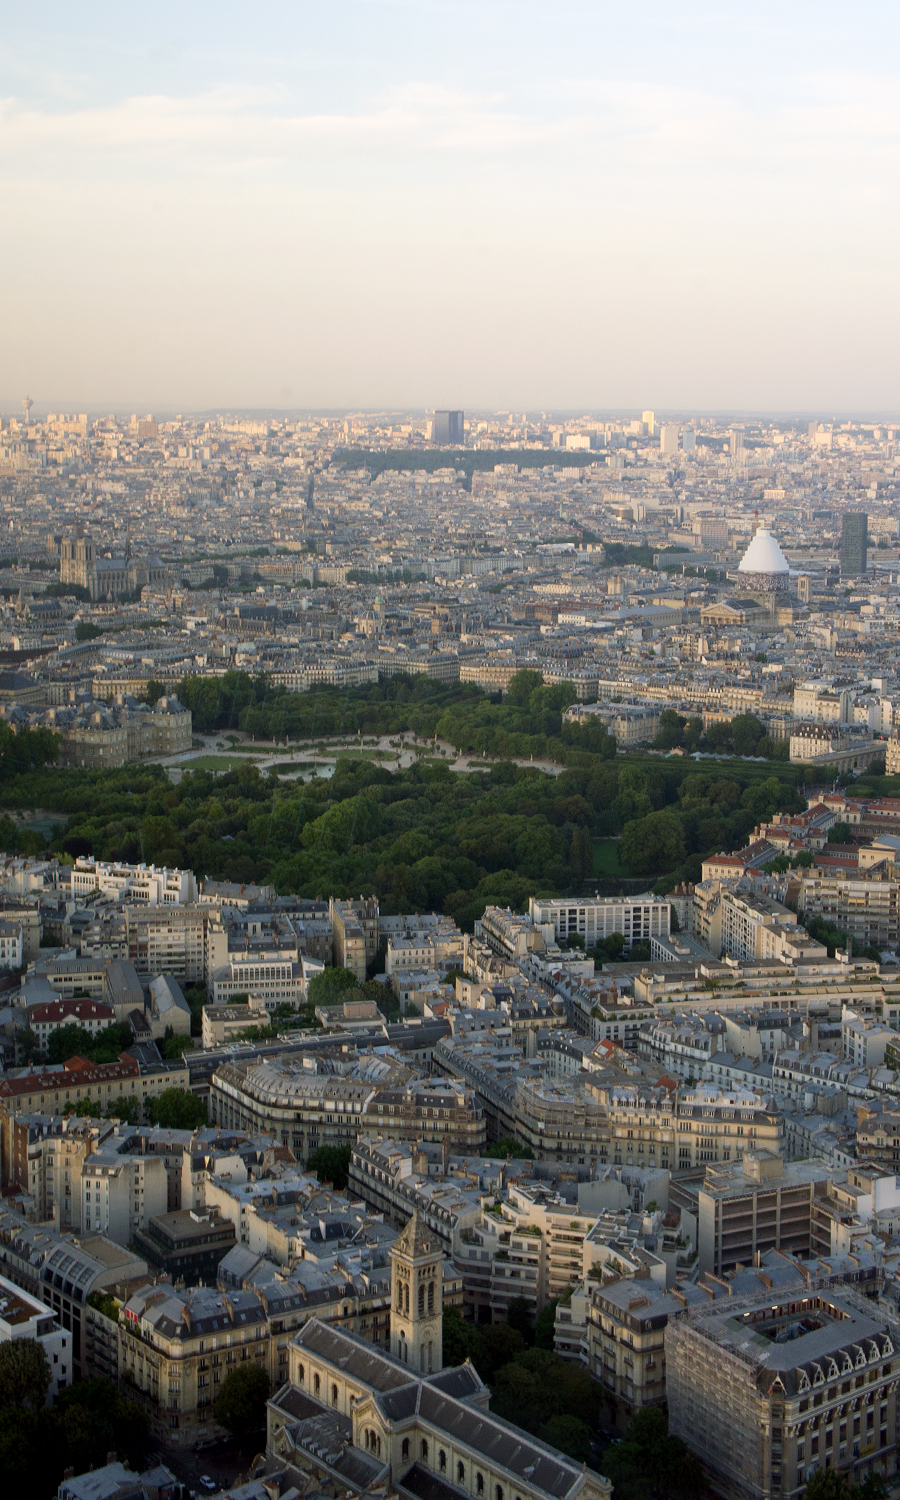 2014-montparnasse-56-tower-paris-france-04